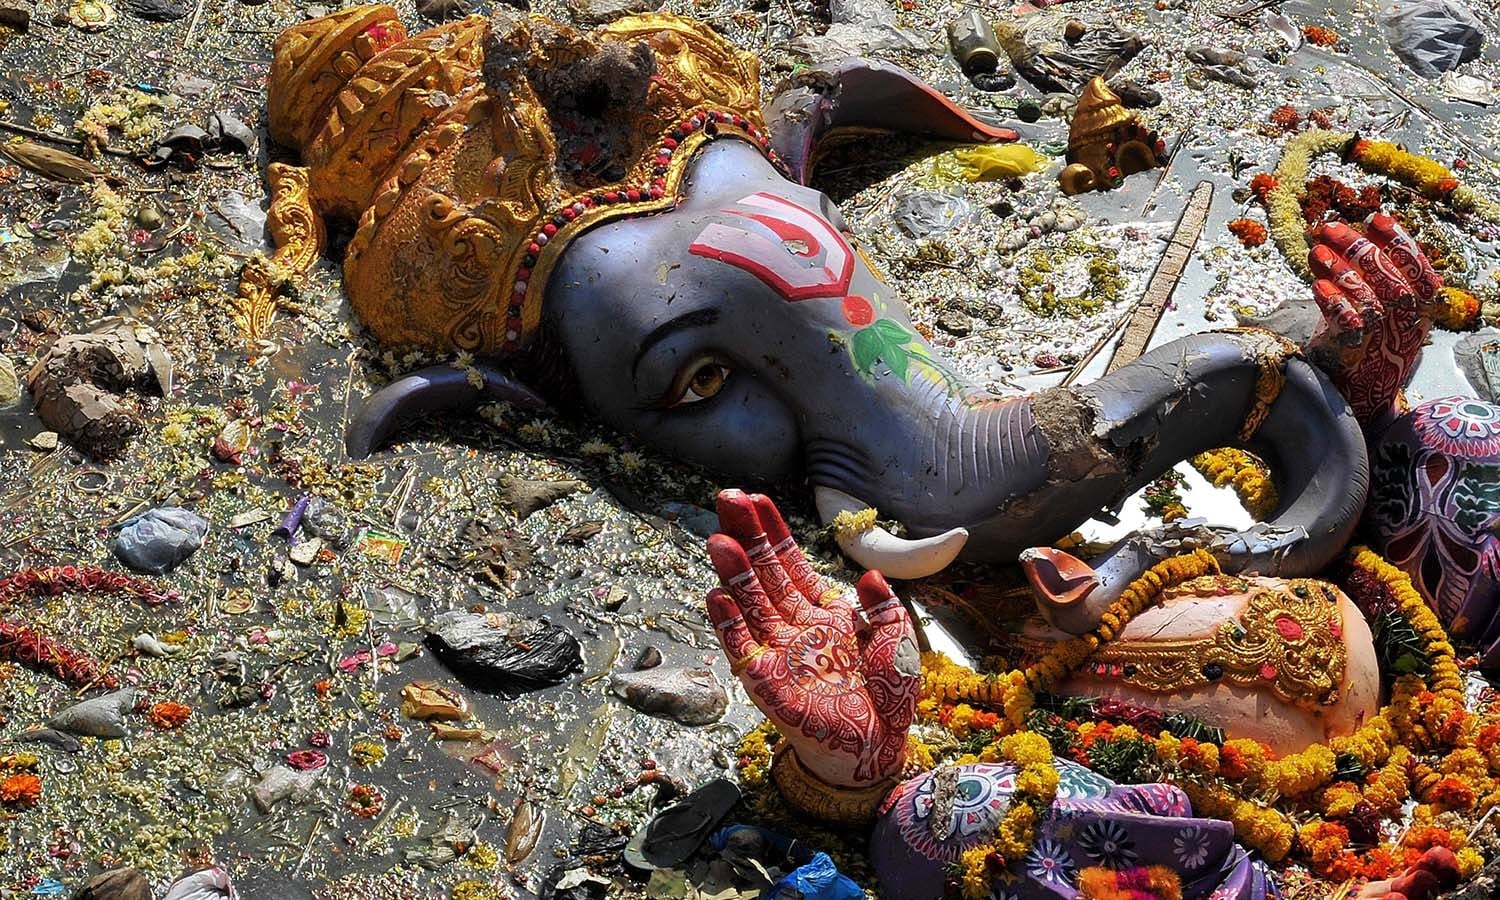 pollution during ganesh utsav Keep ganesh fest hushed in silent zones: mumbai ngo writes to pm - anti-noise pollution activists have raised a strong objection against chief minister devendra fadnavis's plans to relax noise pollution norms for the ganesh utsav festival in.